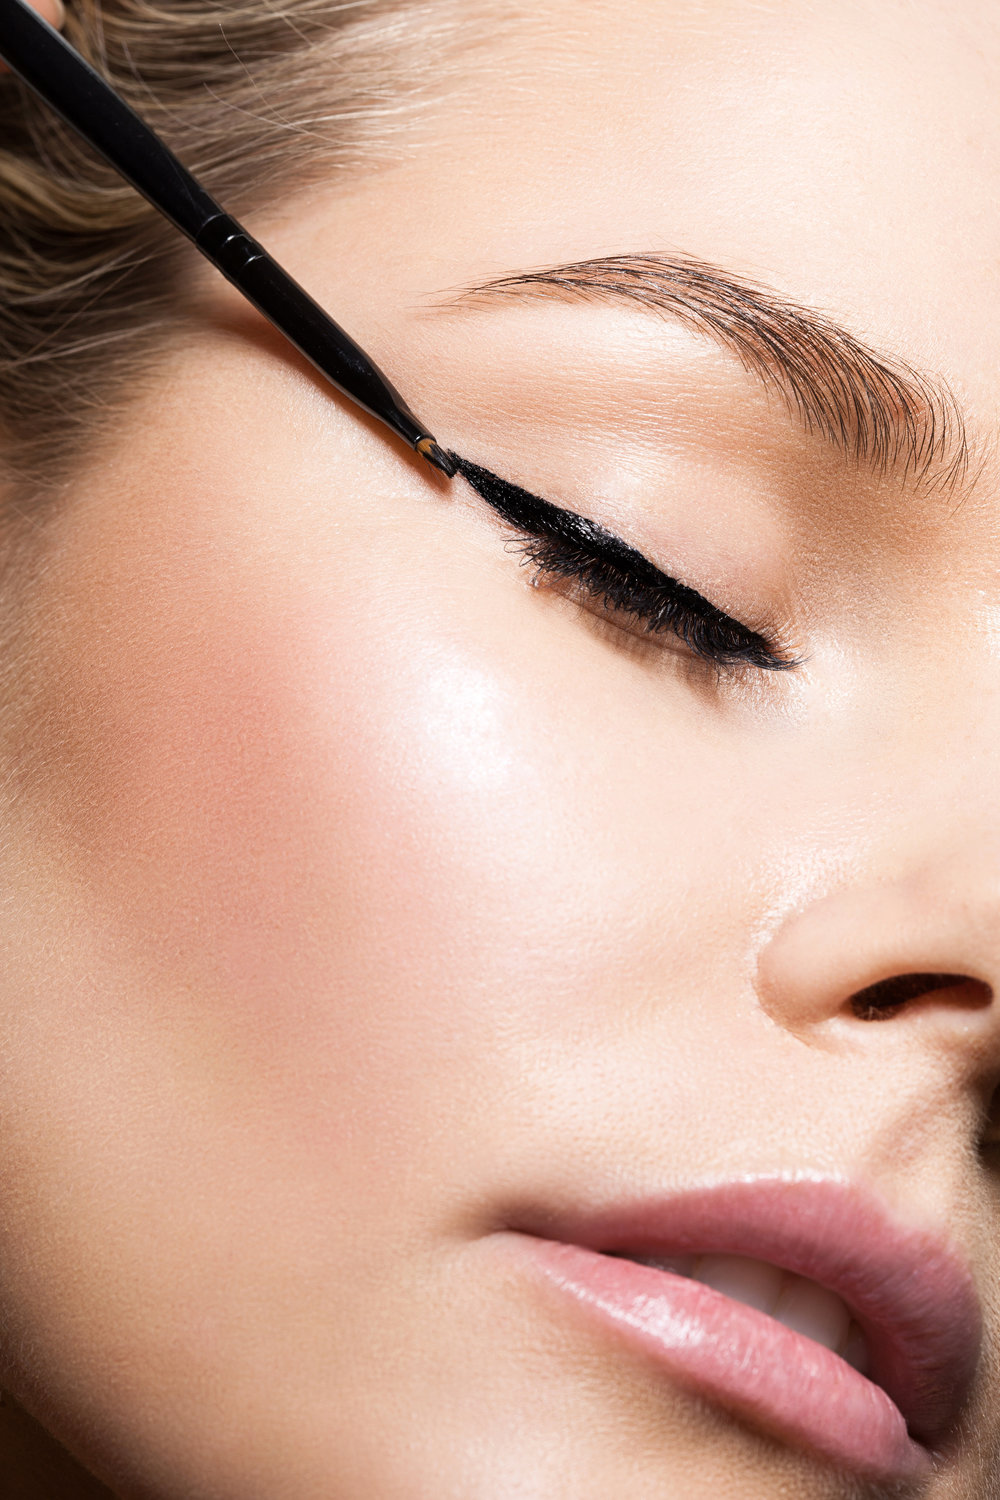 Eyeliner  - Eyeliner products, techniques, tips.  Every style, (and wing)! of eyeliner is explained with full guidance on the suitability and best way to apply